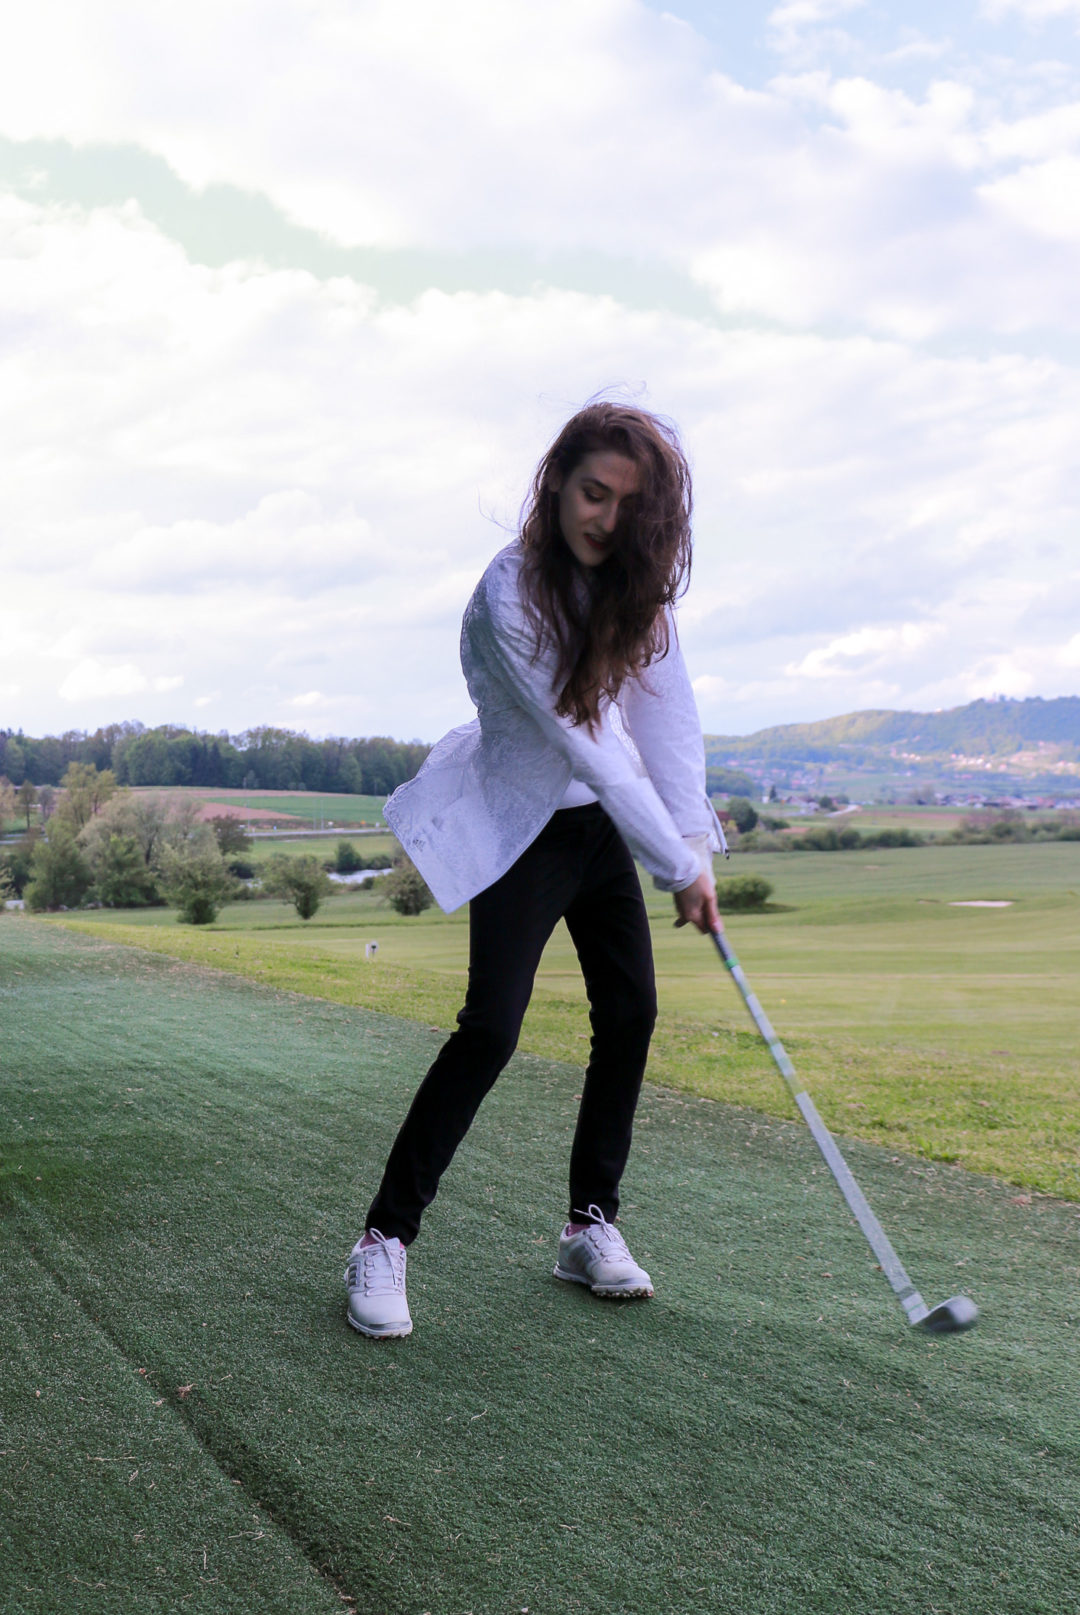 Fashion blogger Veronika Lipar of Brunette From Wall Street sharing what to wear on the golf course now to look fashionable and stylish while practicing her swing on the driving range